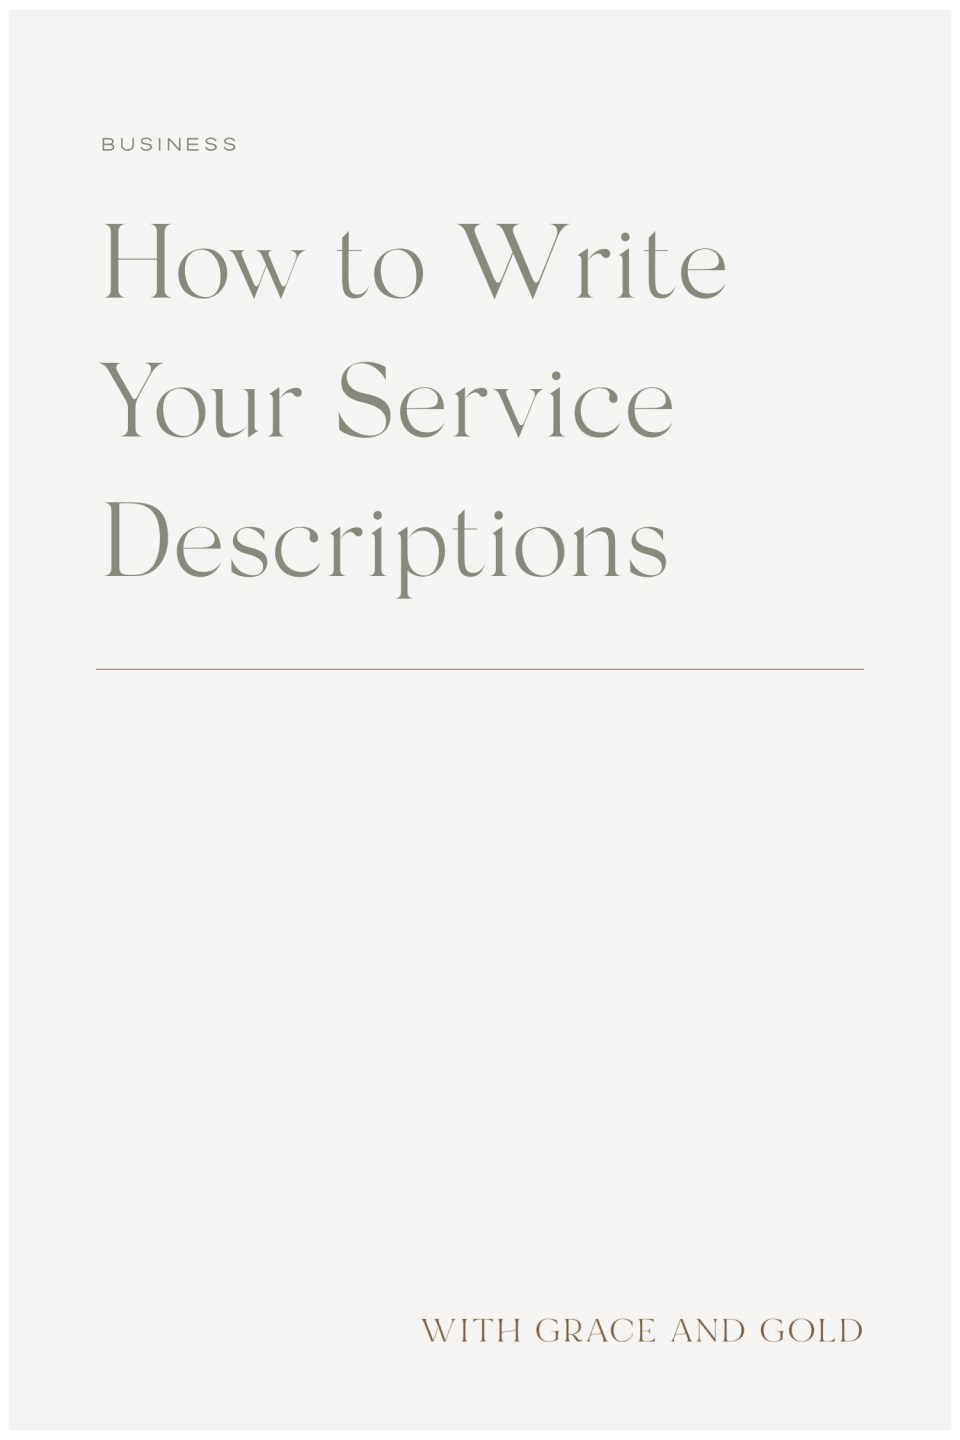 How to Write Your Service Descriptions